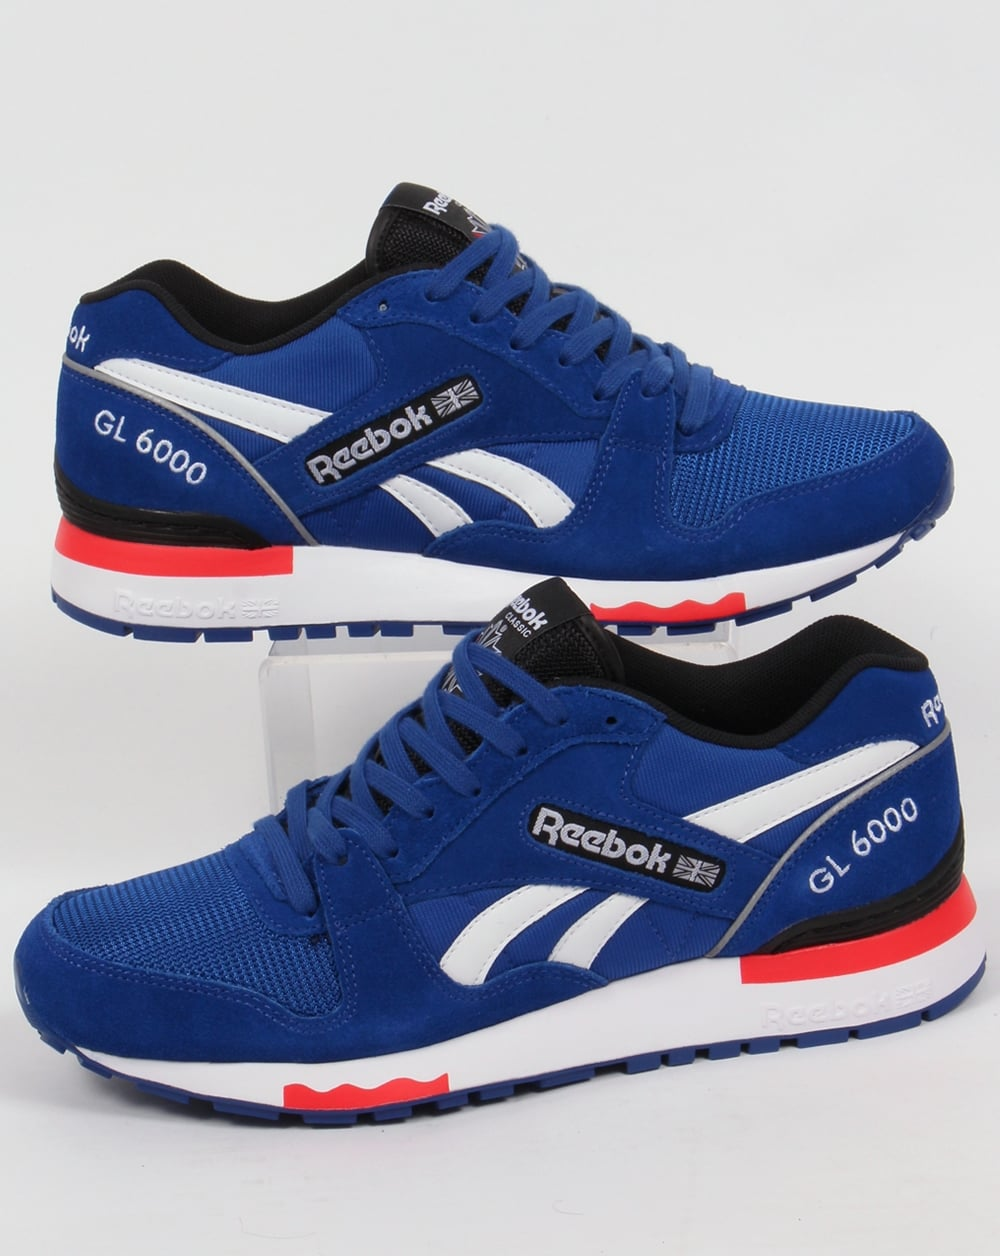 reebok gl 6000 pp trainers dark royal red shoes runners mens. Black Bedroom Furniture Sets. Home Design Ideas